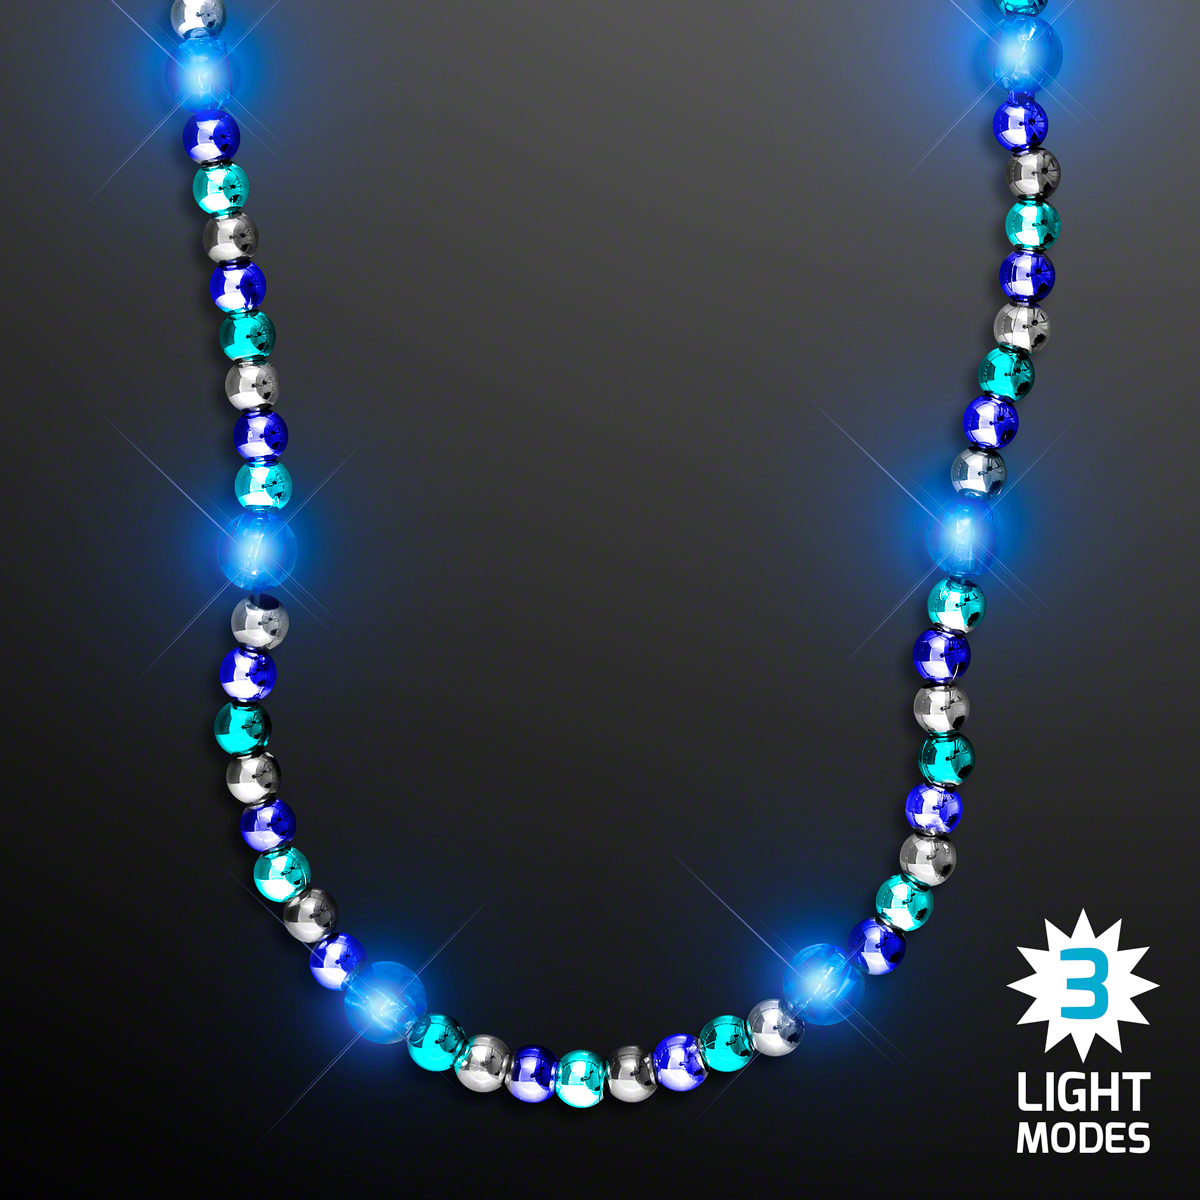 Woman wearing Deluxe Blue Light Up Beaded Necklace